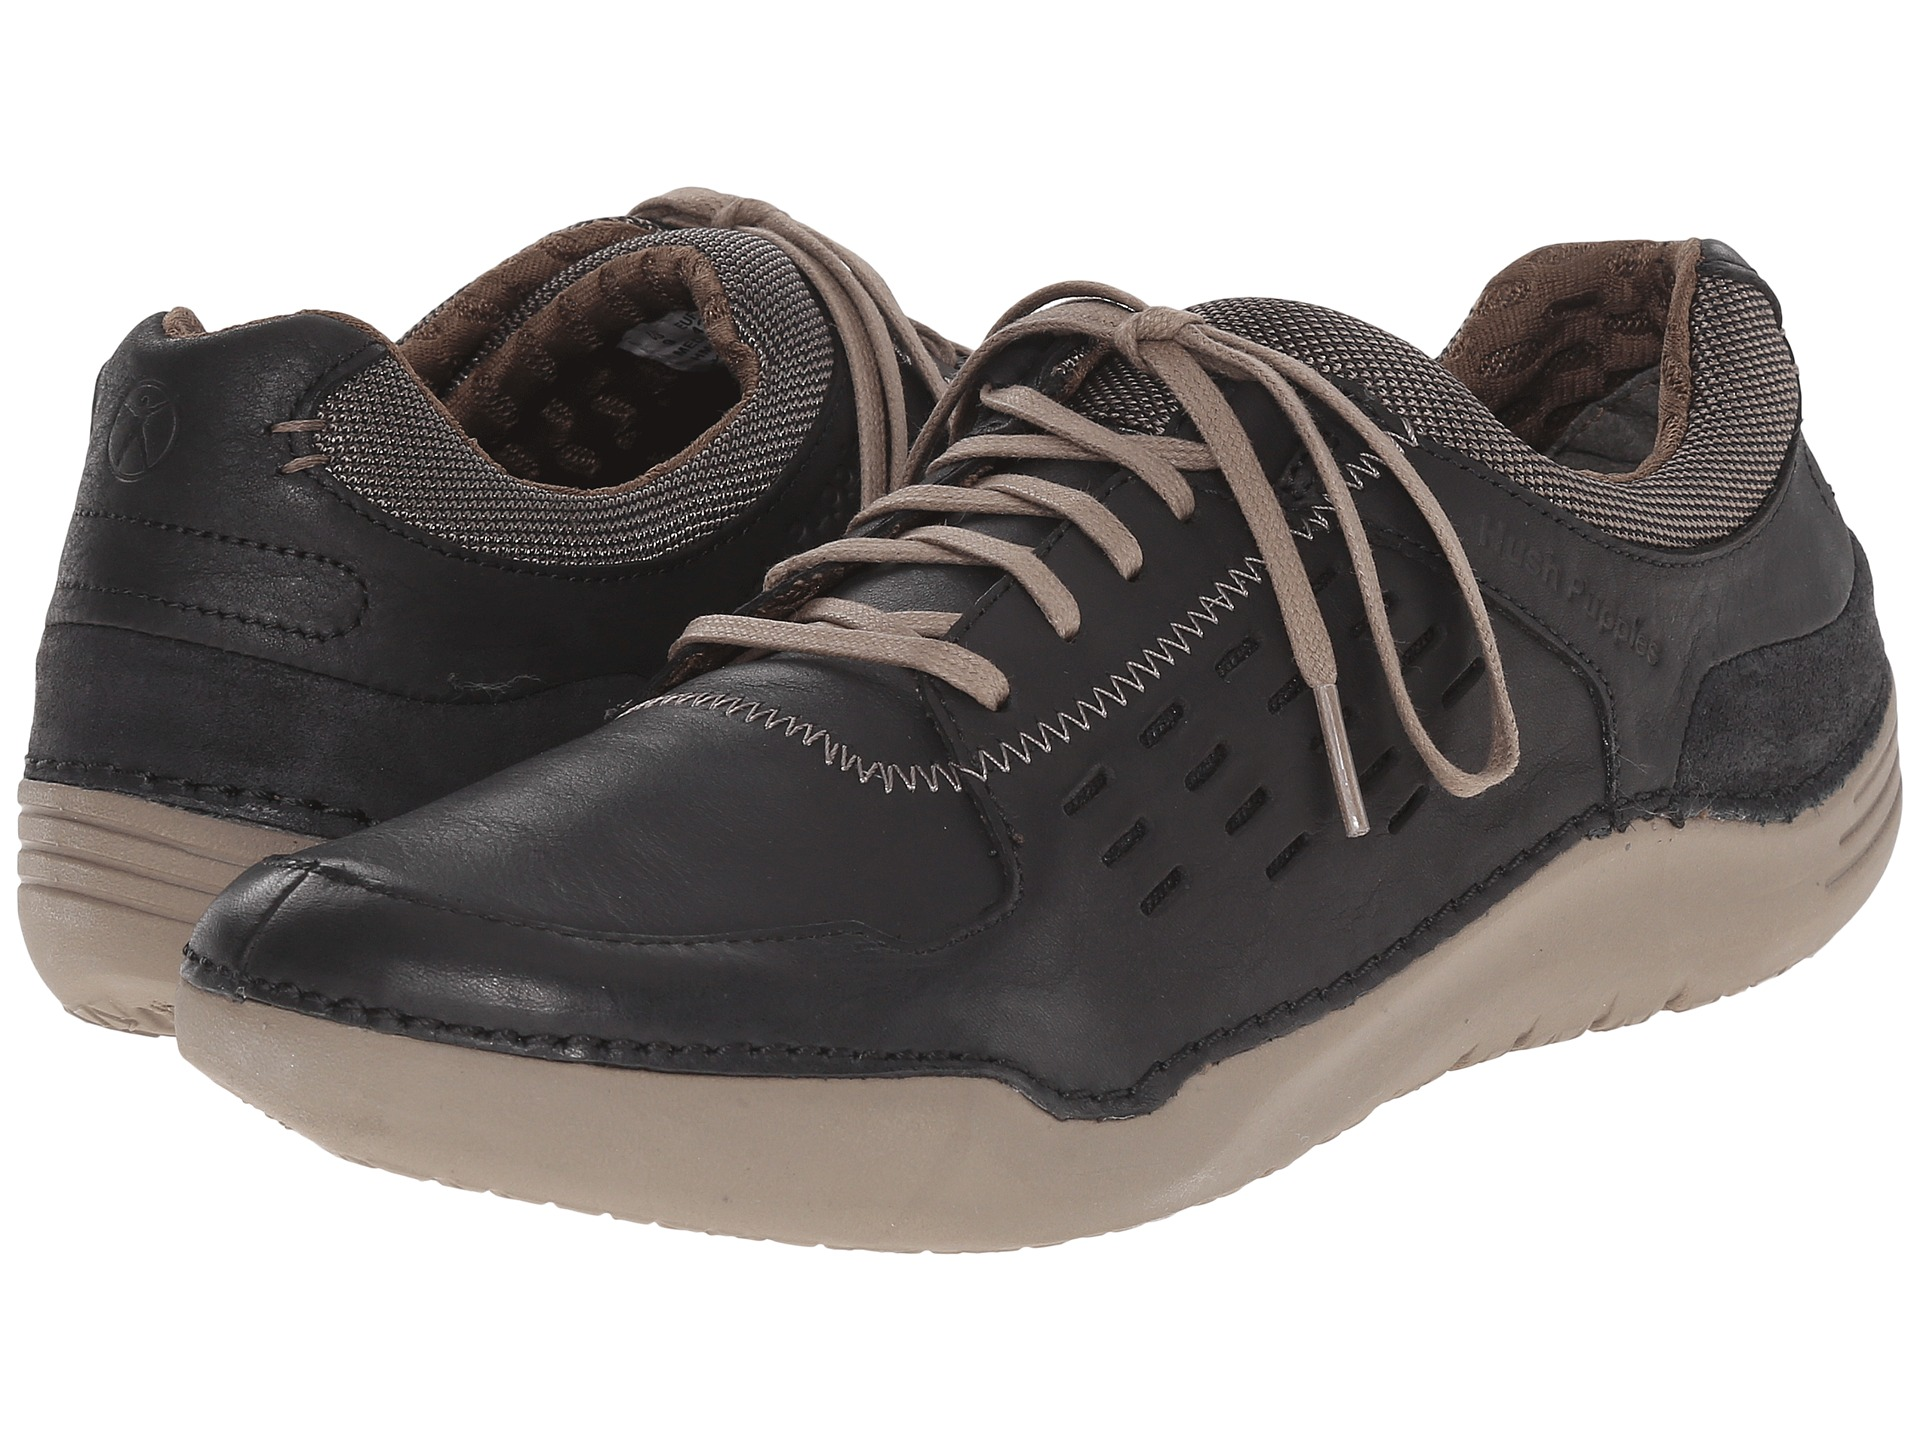 Hush Puppies HINTON METHOD Mens Black Leather Oxfords Comfort Casual Shoes by Hush Puppies